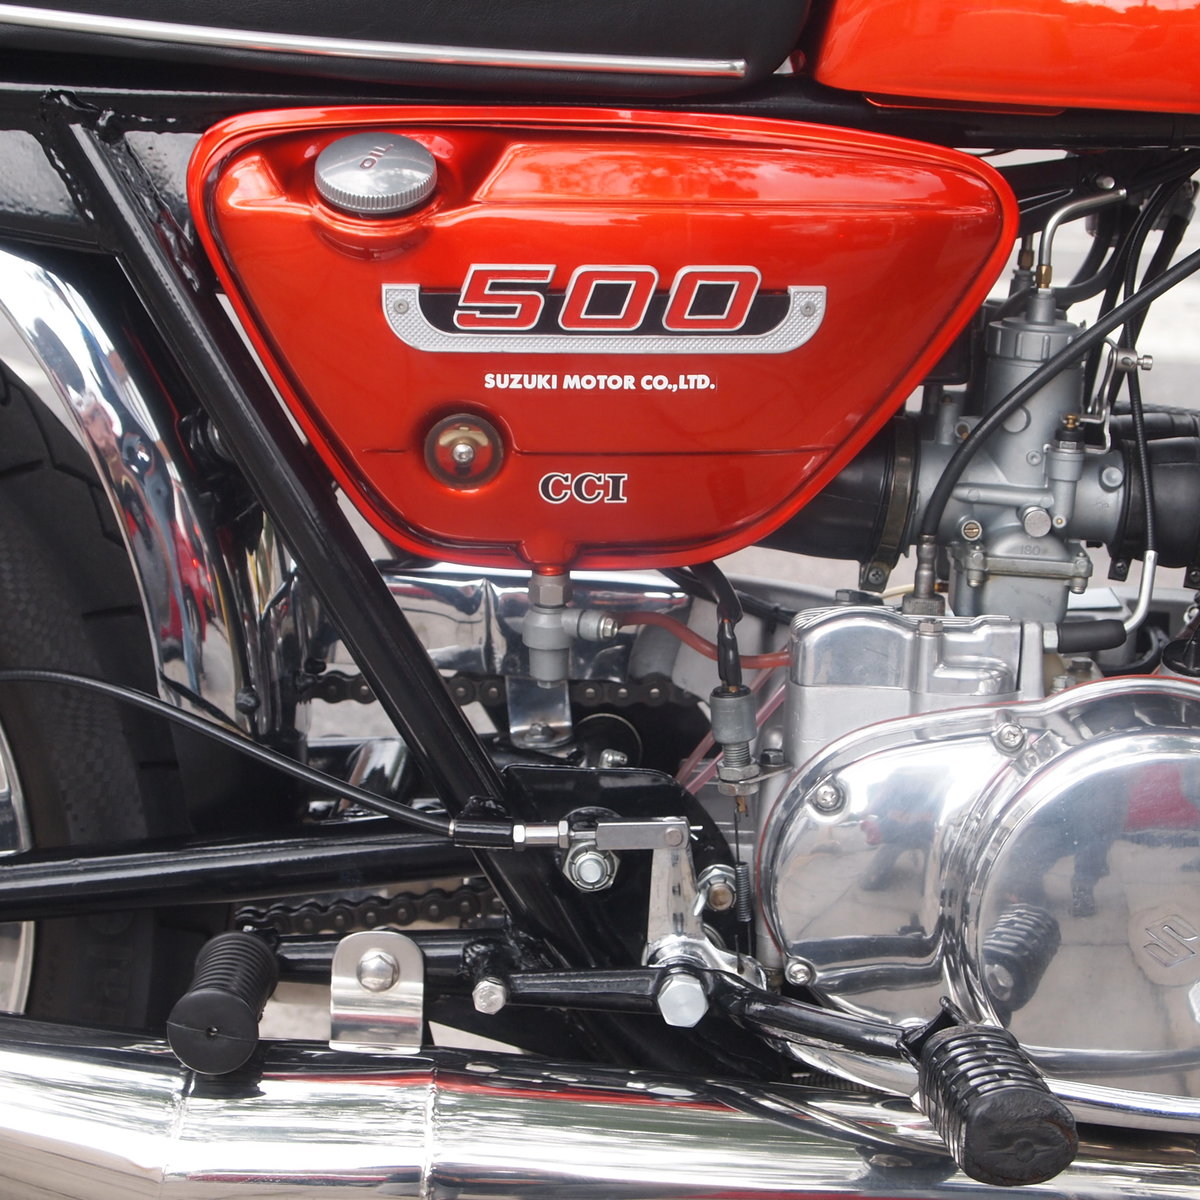 1974 Suzuki T500 In Beautiful Condition, RESERVED FOR TERRY. SOLD (picture 5 of 6)